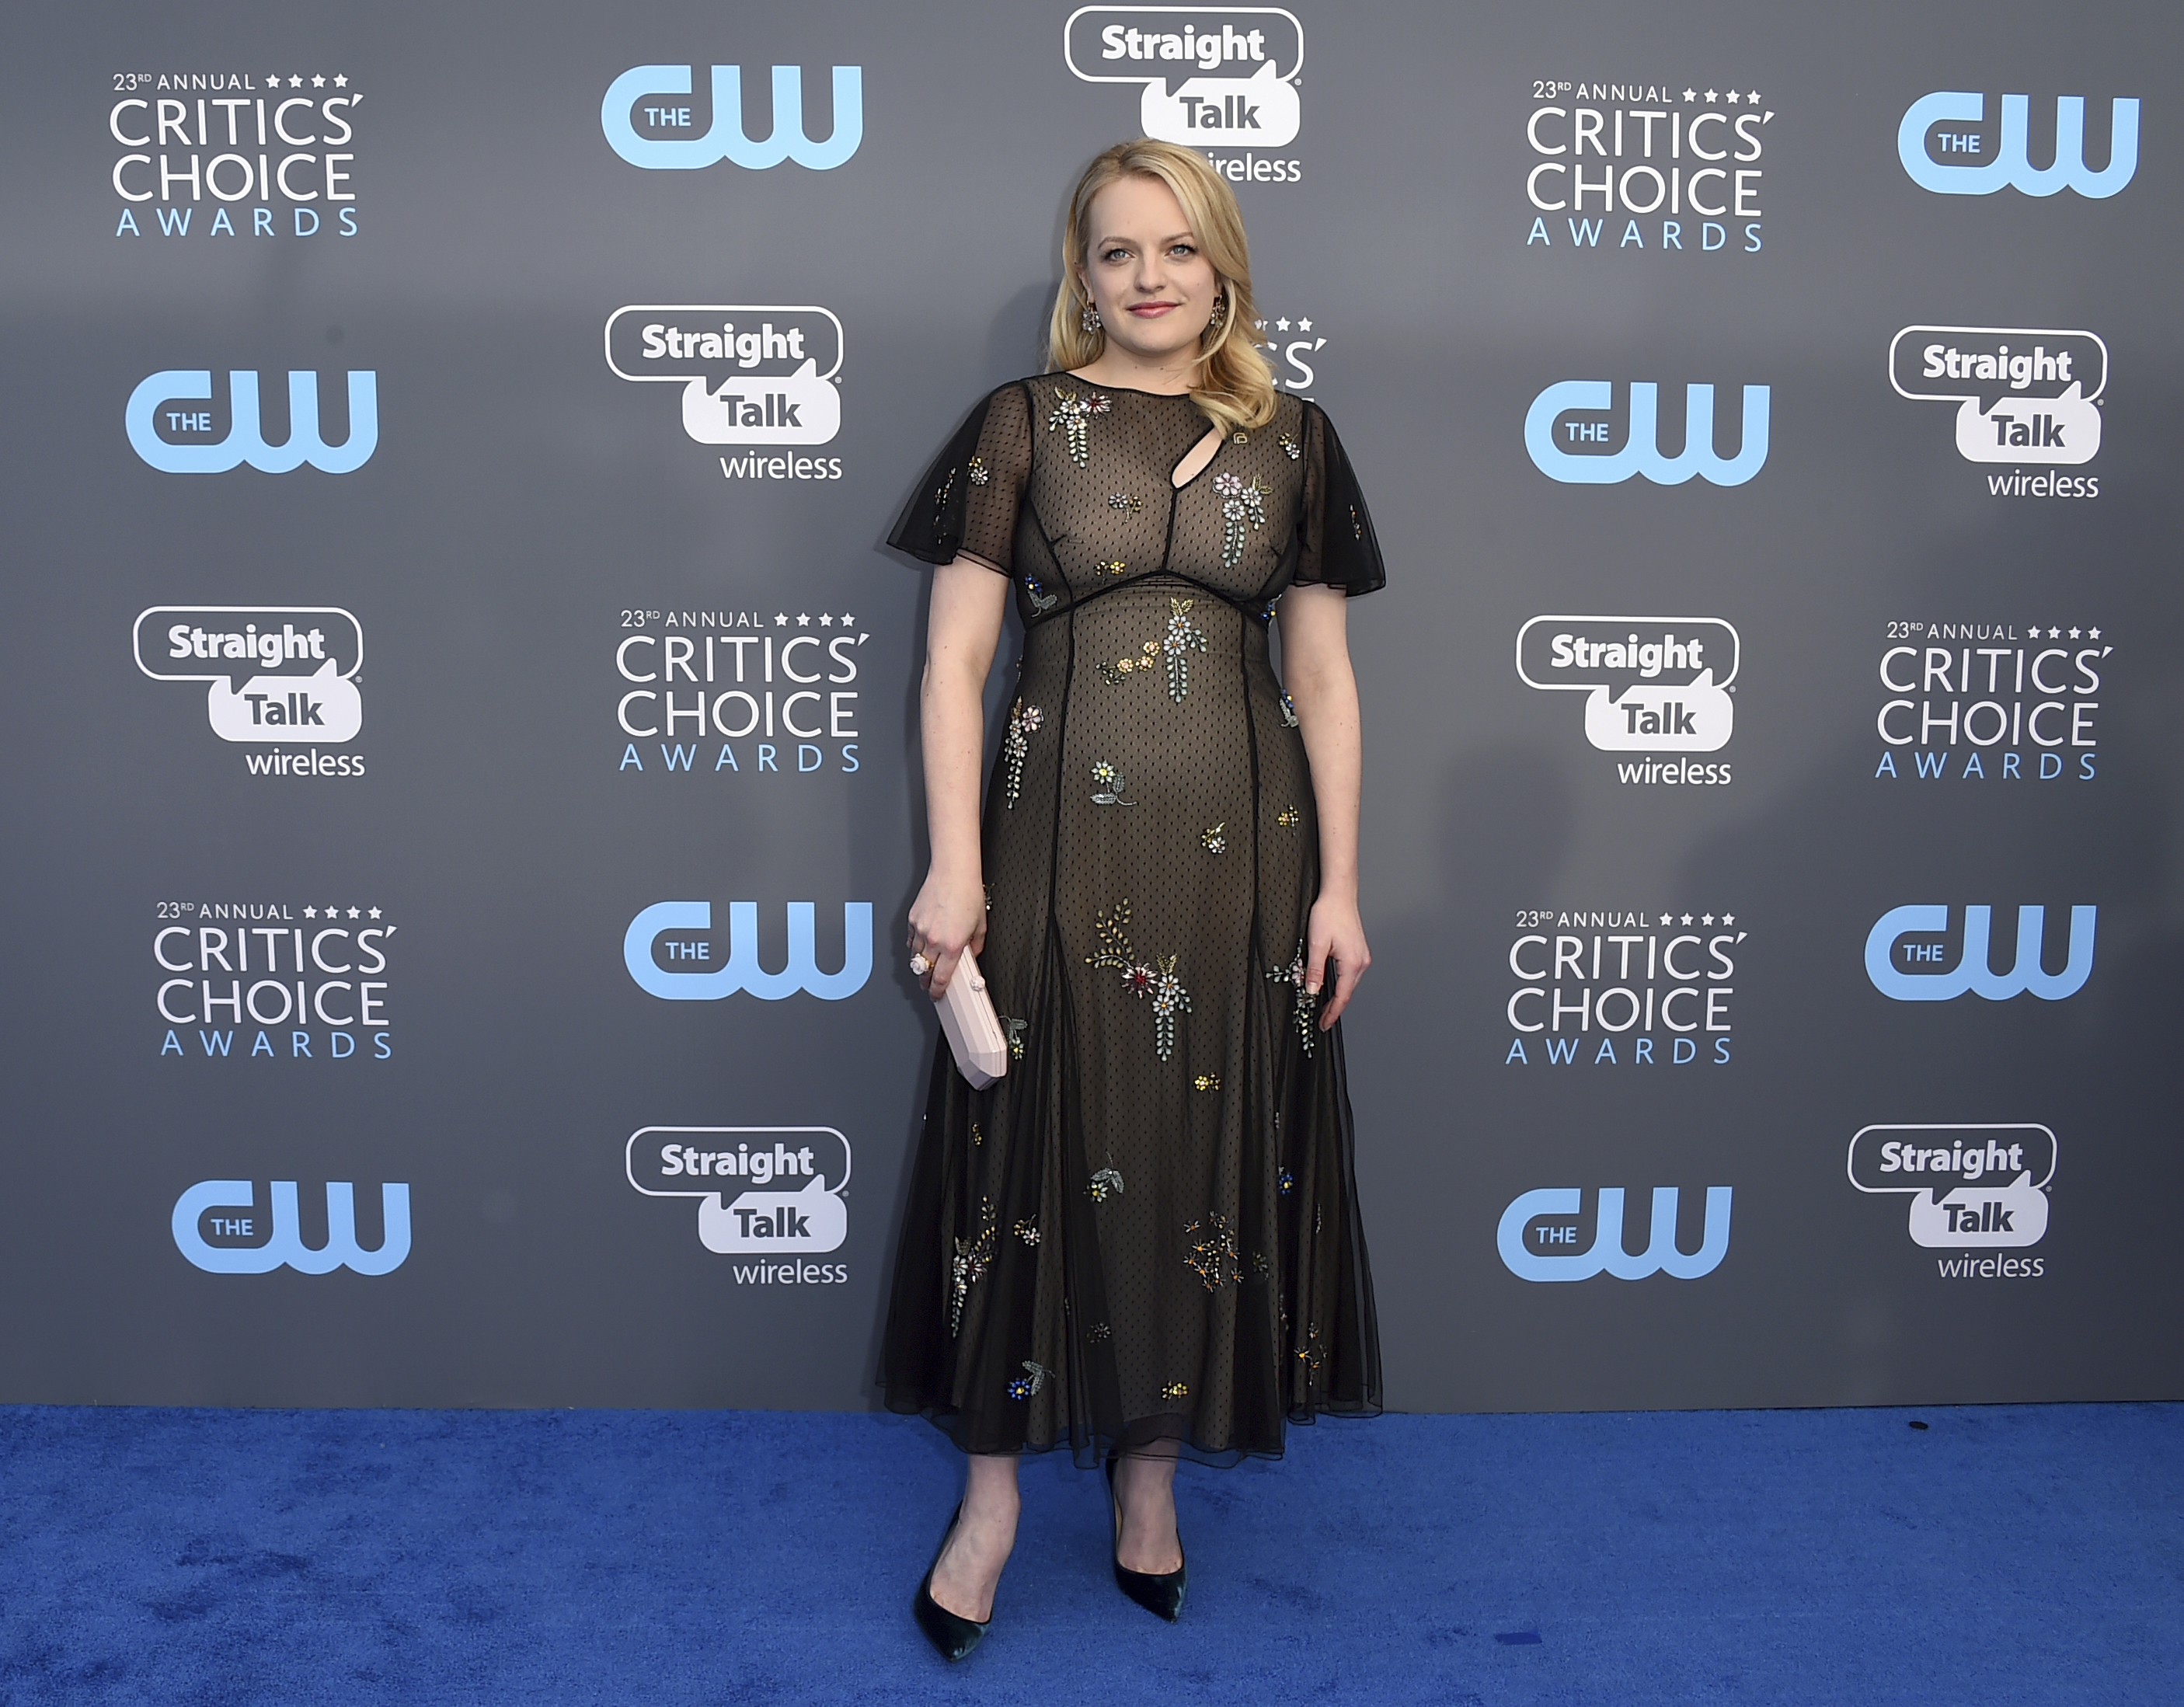 <div class='meta'><div class='origin-logo' data-origin='AP'></div><span class='caption-text' data-credit='Jordan Strauss/Invision/AP'>Elisabeth Moss arrives at the 23rd annual Critics' Choice Awards at the Barker Hangar on Thursday, Jan. 11, 2018, in Santa Monica, Calif.</span></div>